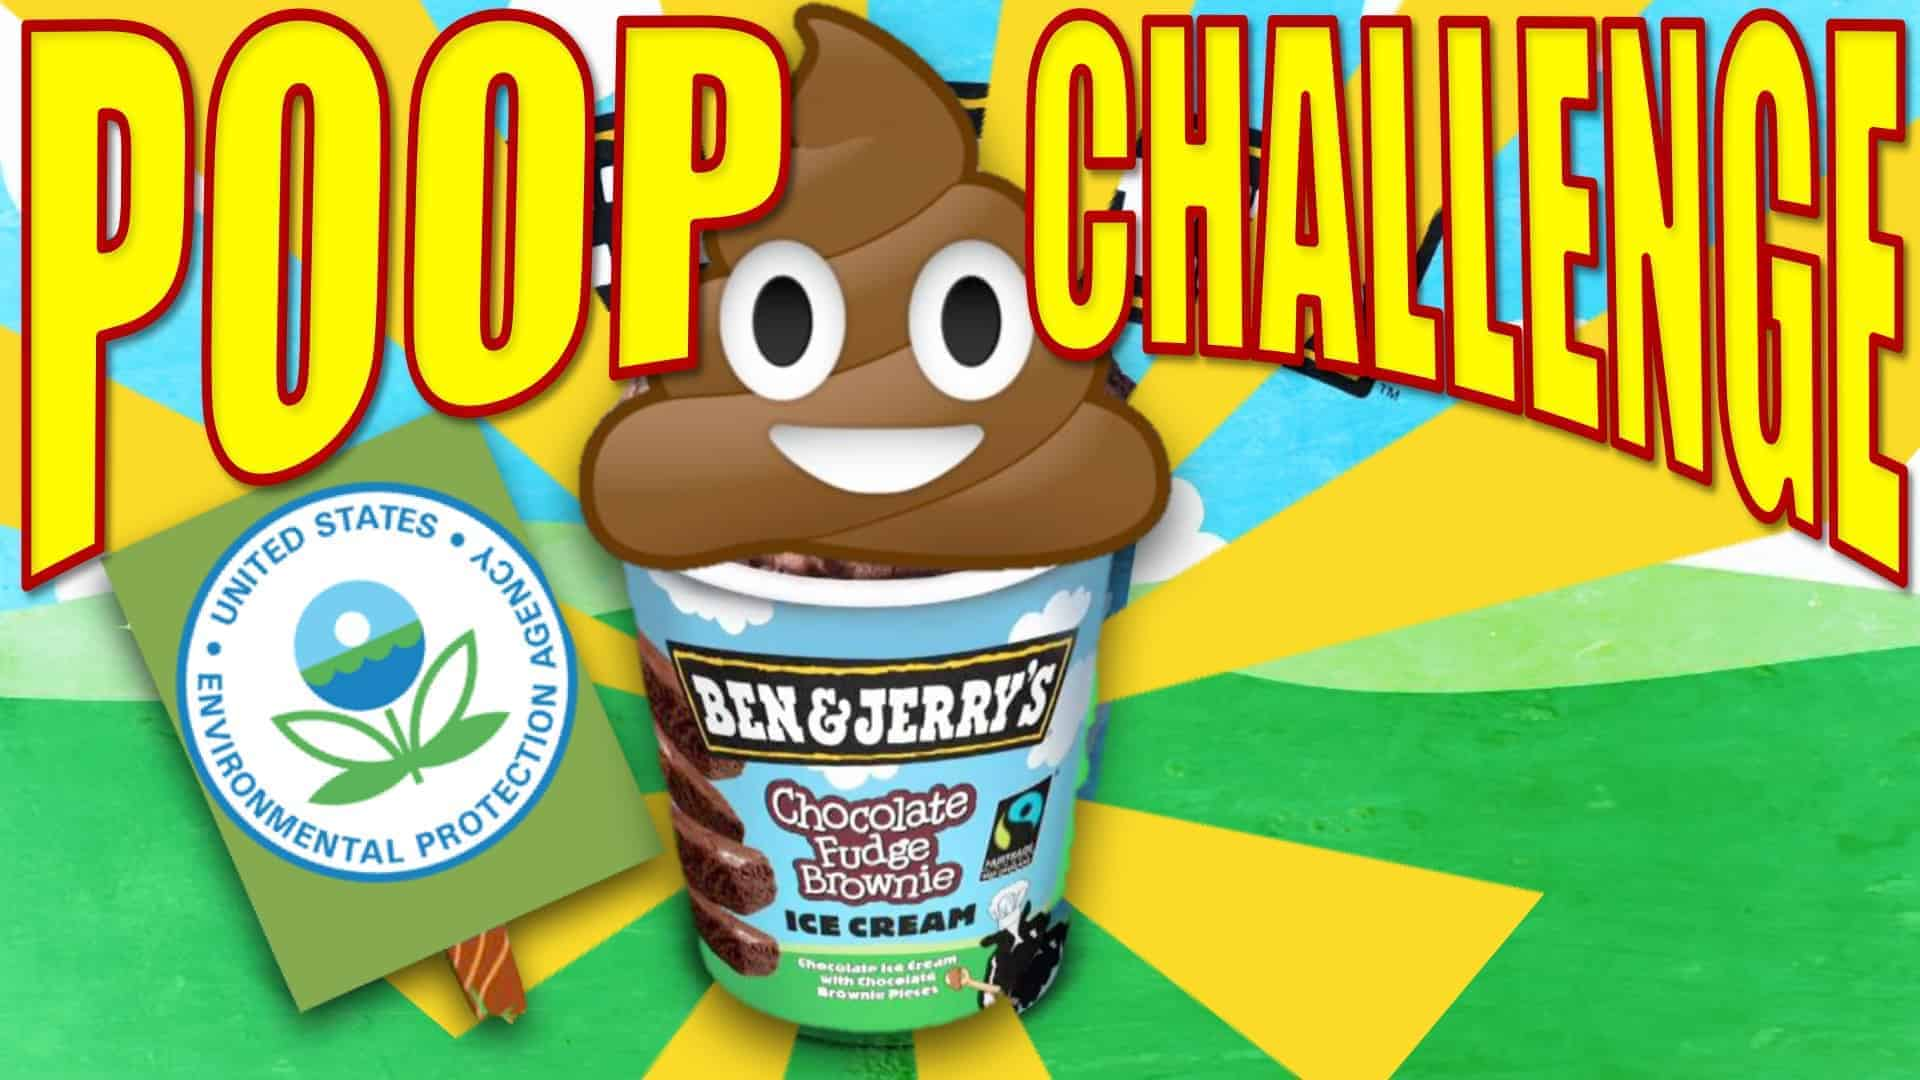 """Arching across the top in large yellow lettering are the words """"Poop Challenge"""". They are separated slightly but the image of a Ben and Jerry's """"Chocolate Fudge Brownie"""" ice cream carton. On the top of the carton is a large poop emoji. To the left of the carton is a lawn sign with United States Environmental Protection Agency insignia upon it."""